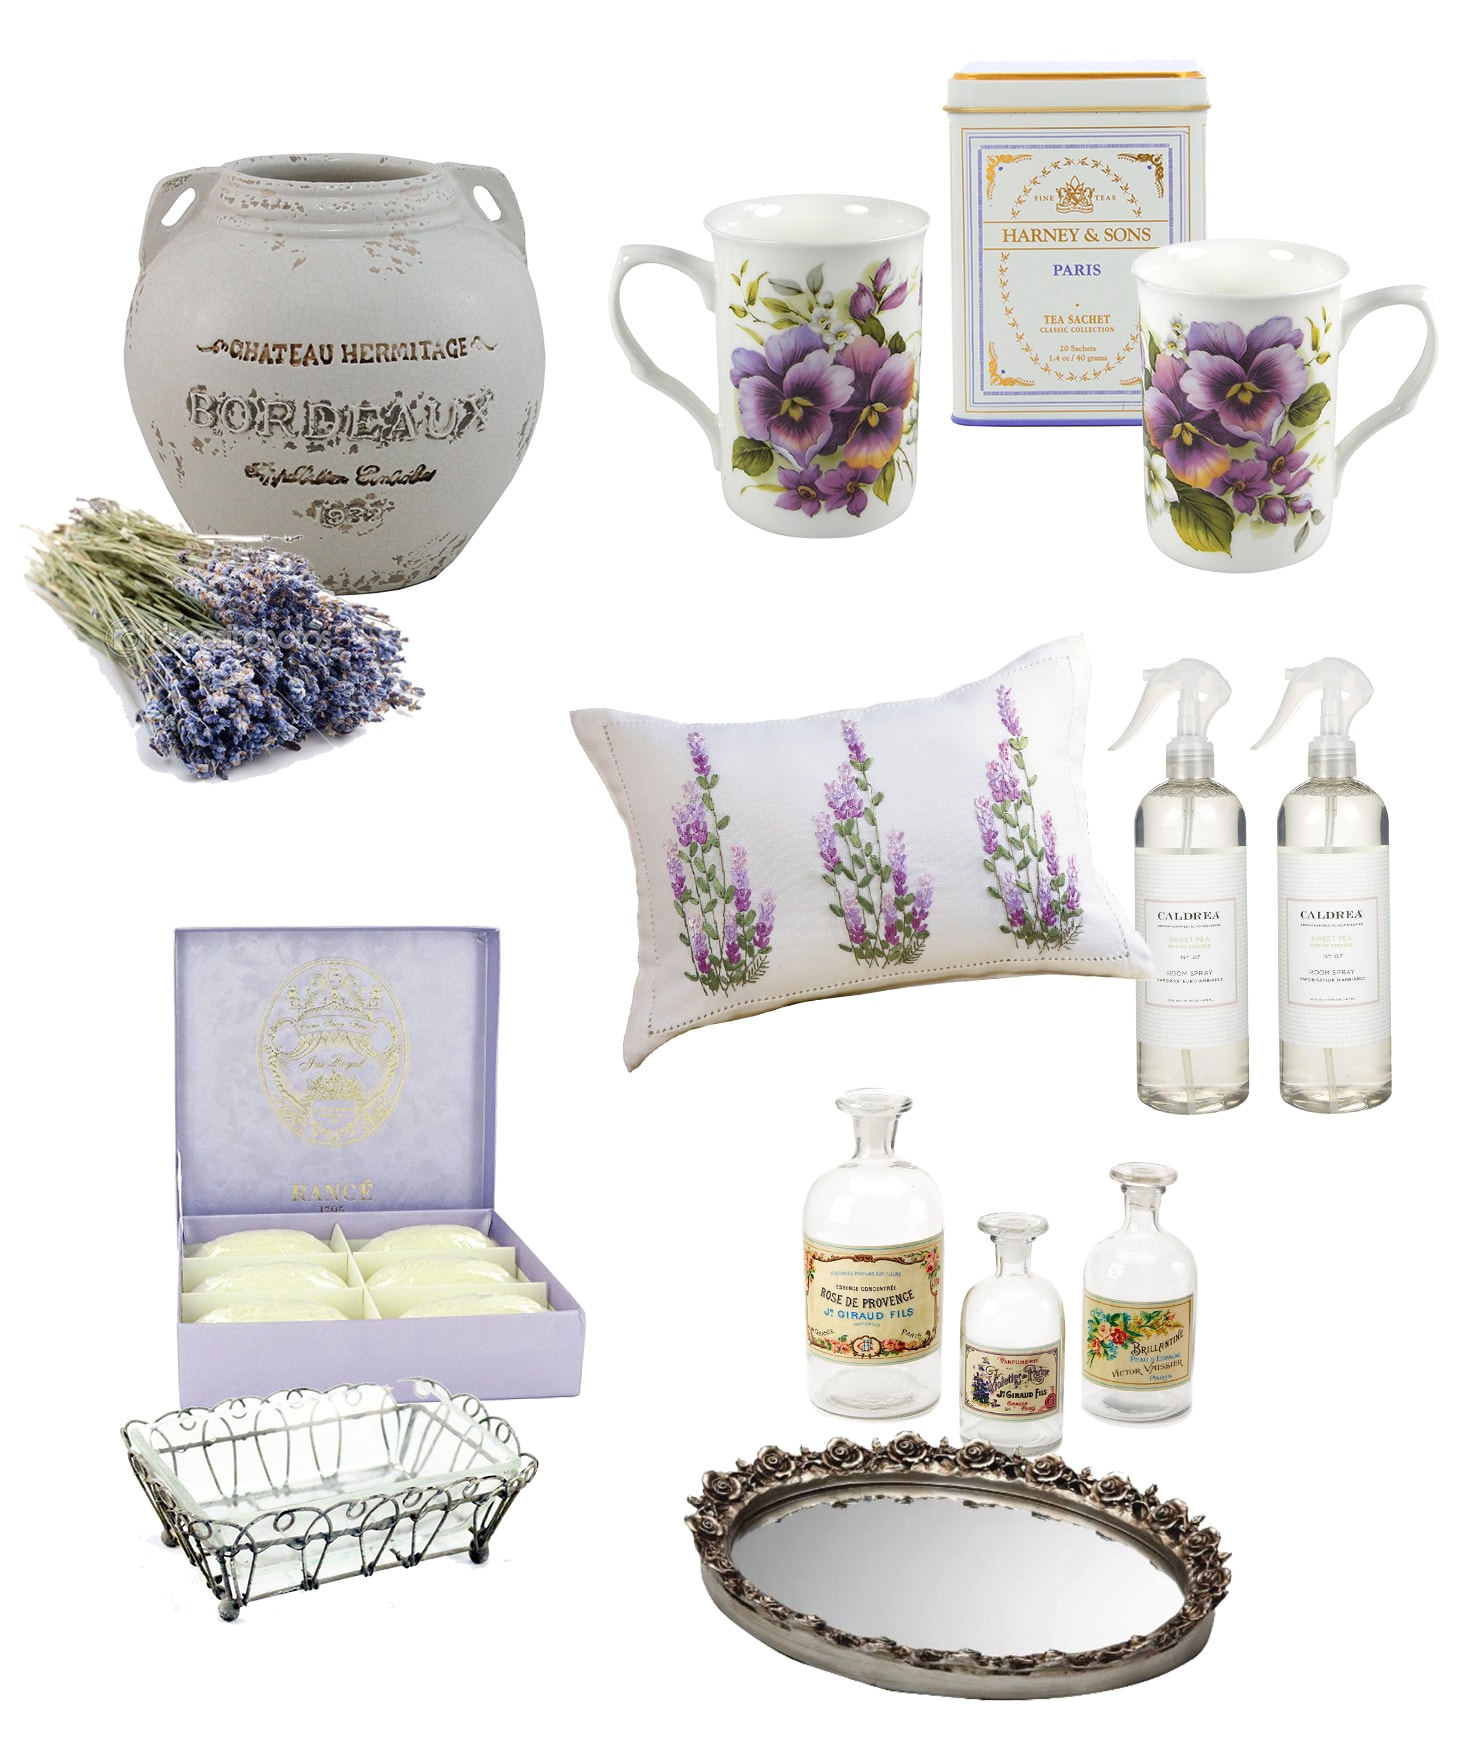 Mothers Day Gifts: 10 Creative Gift Pairing Ideas for Mom